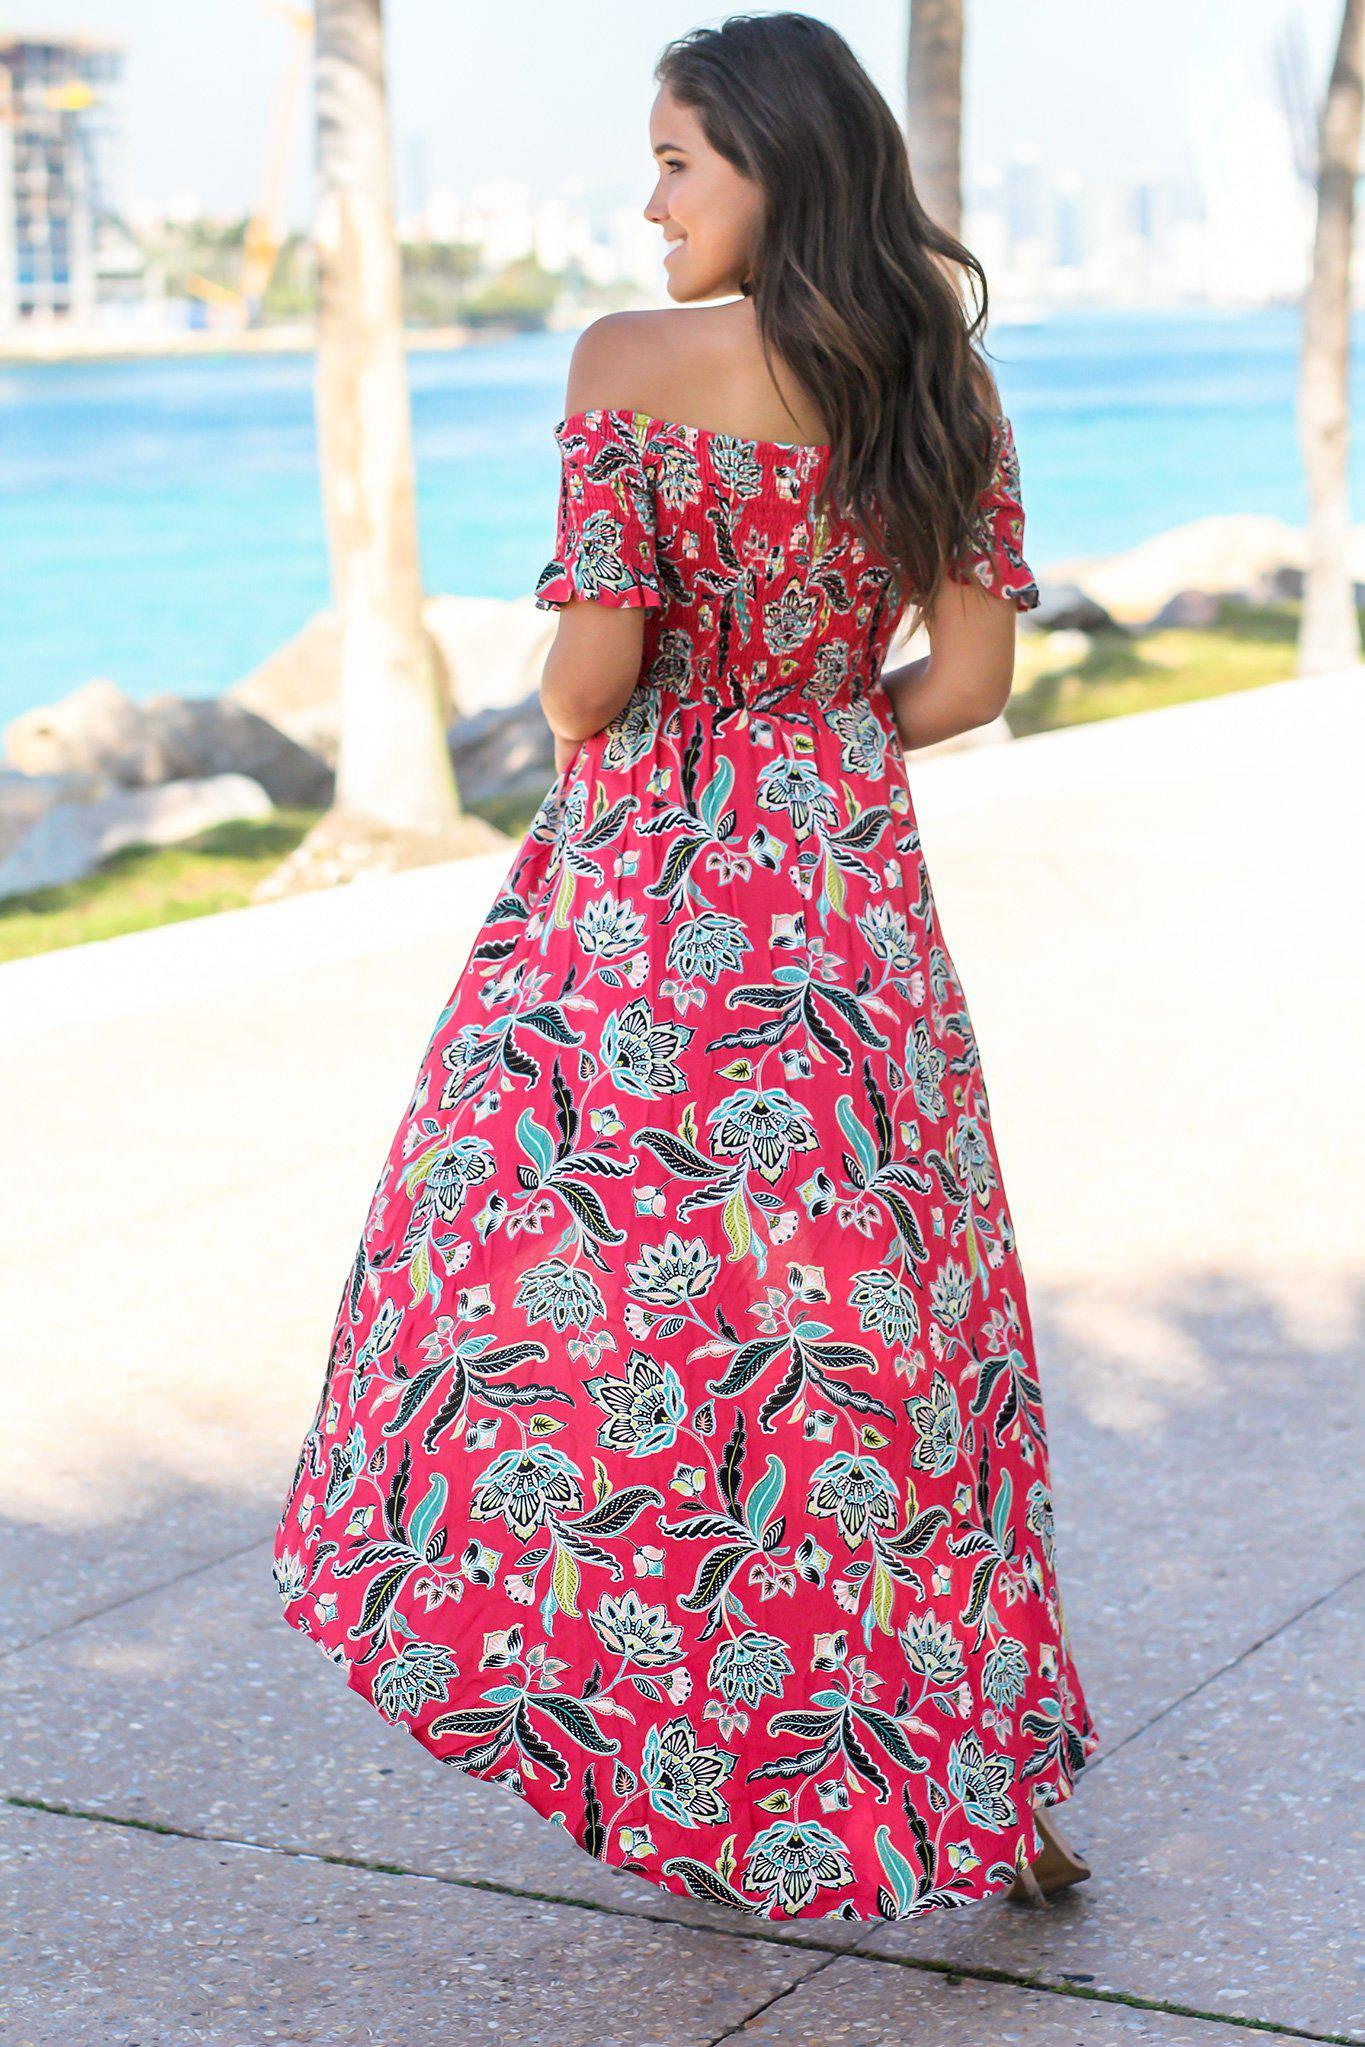 Red and Black Floral Off Shoulder Dress